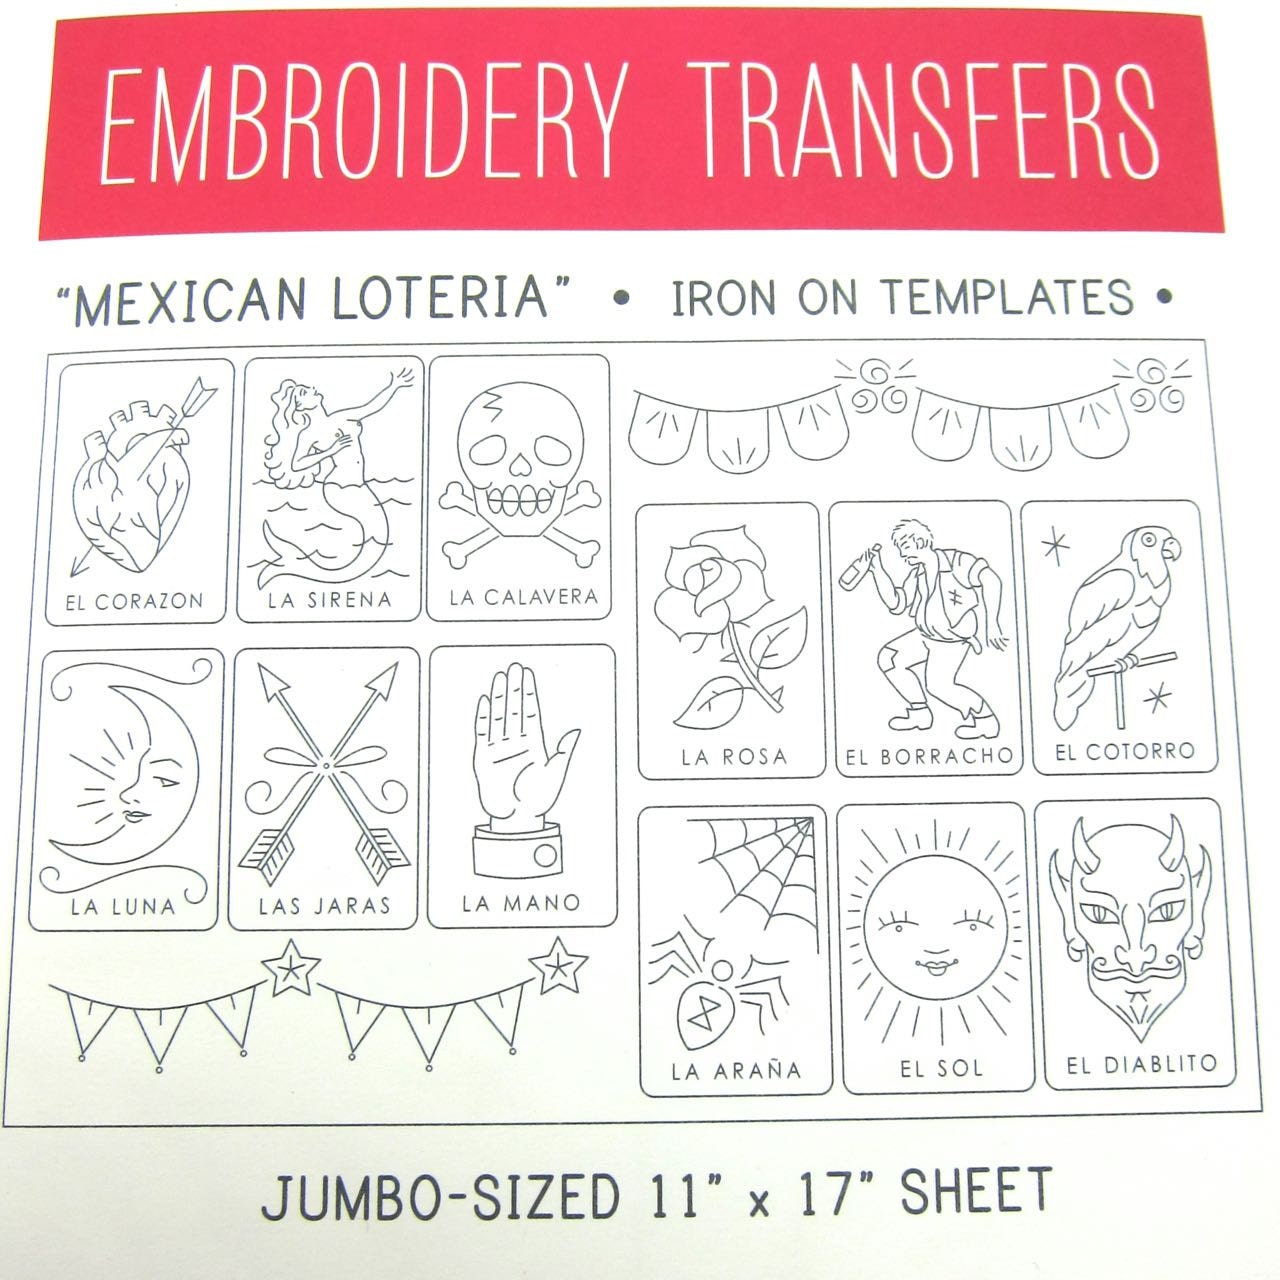 Embroidery pattern sublime stitching iron on transfer hand embroidery pattern sublime stitching iron on transfer hand embroidery pattern mexican loteria big sheet bankloansurffo Gallery